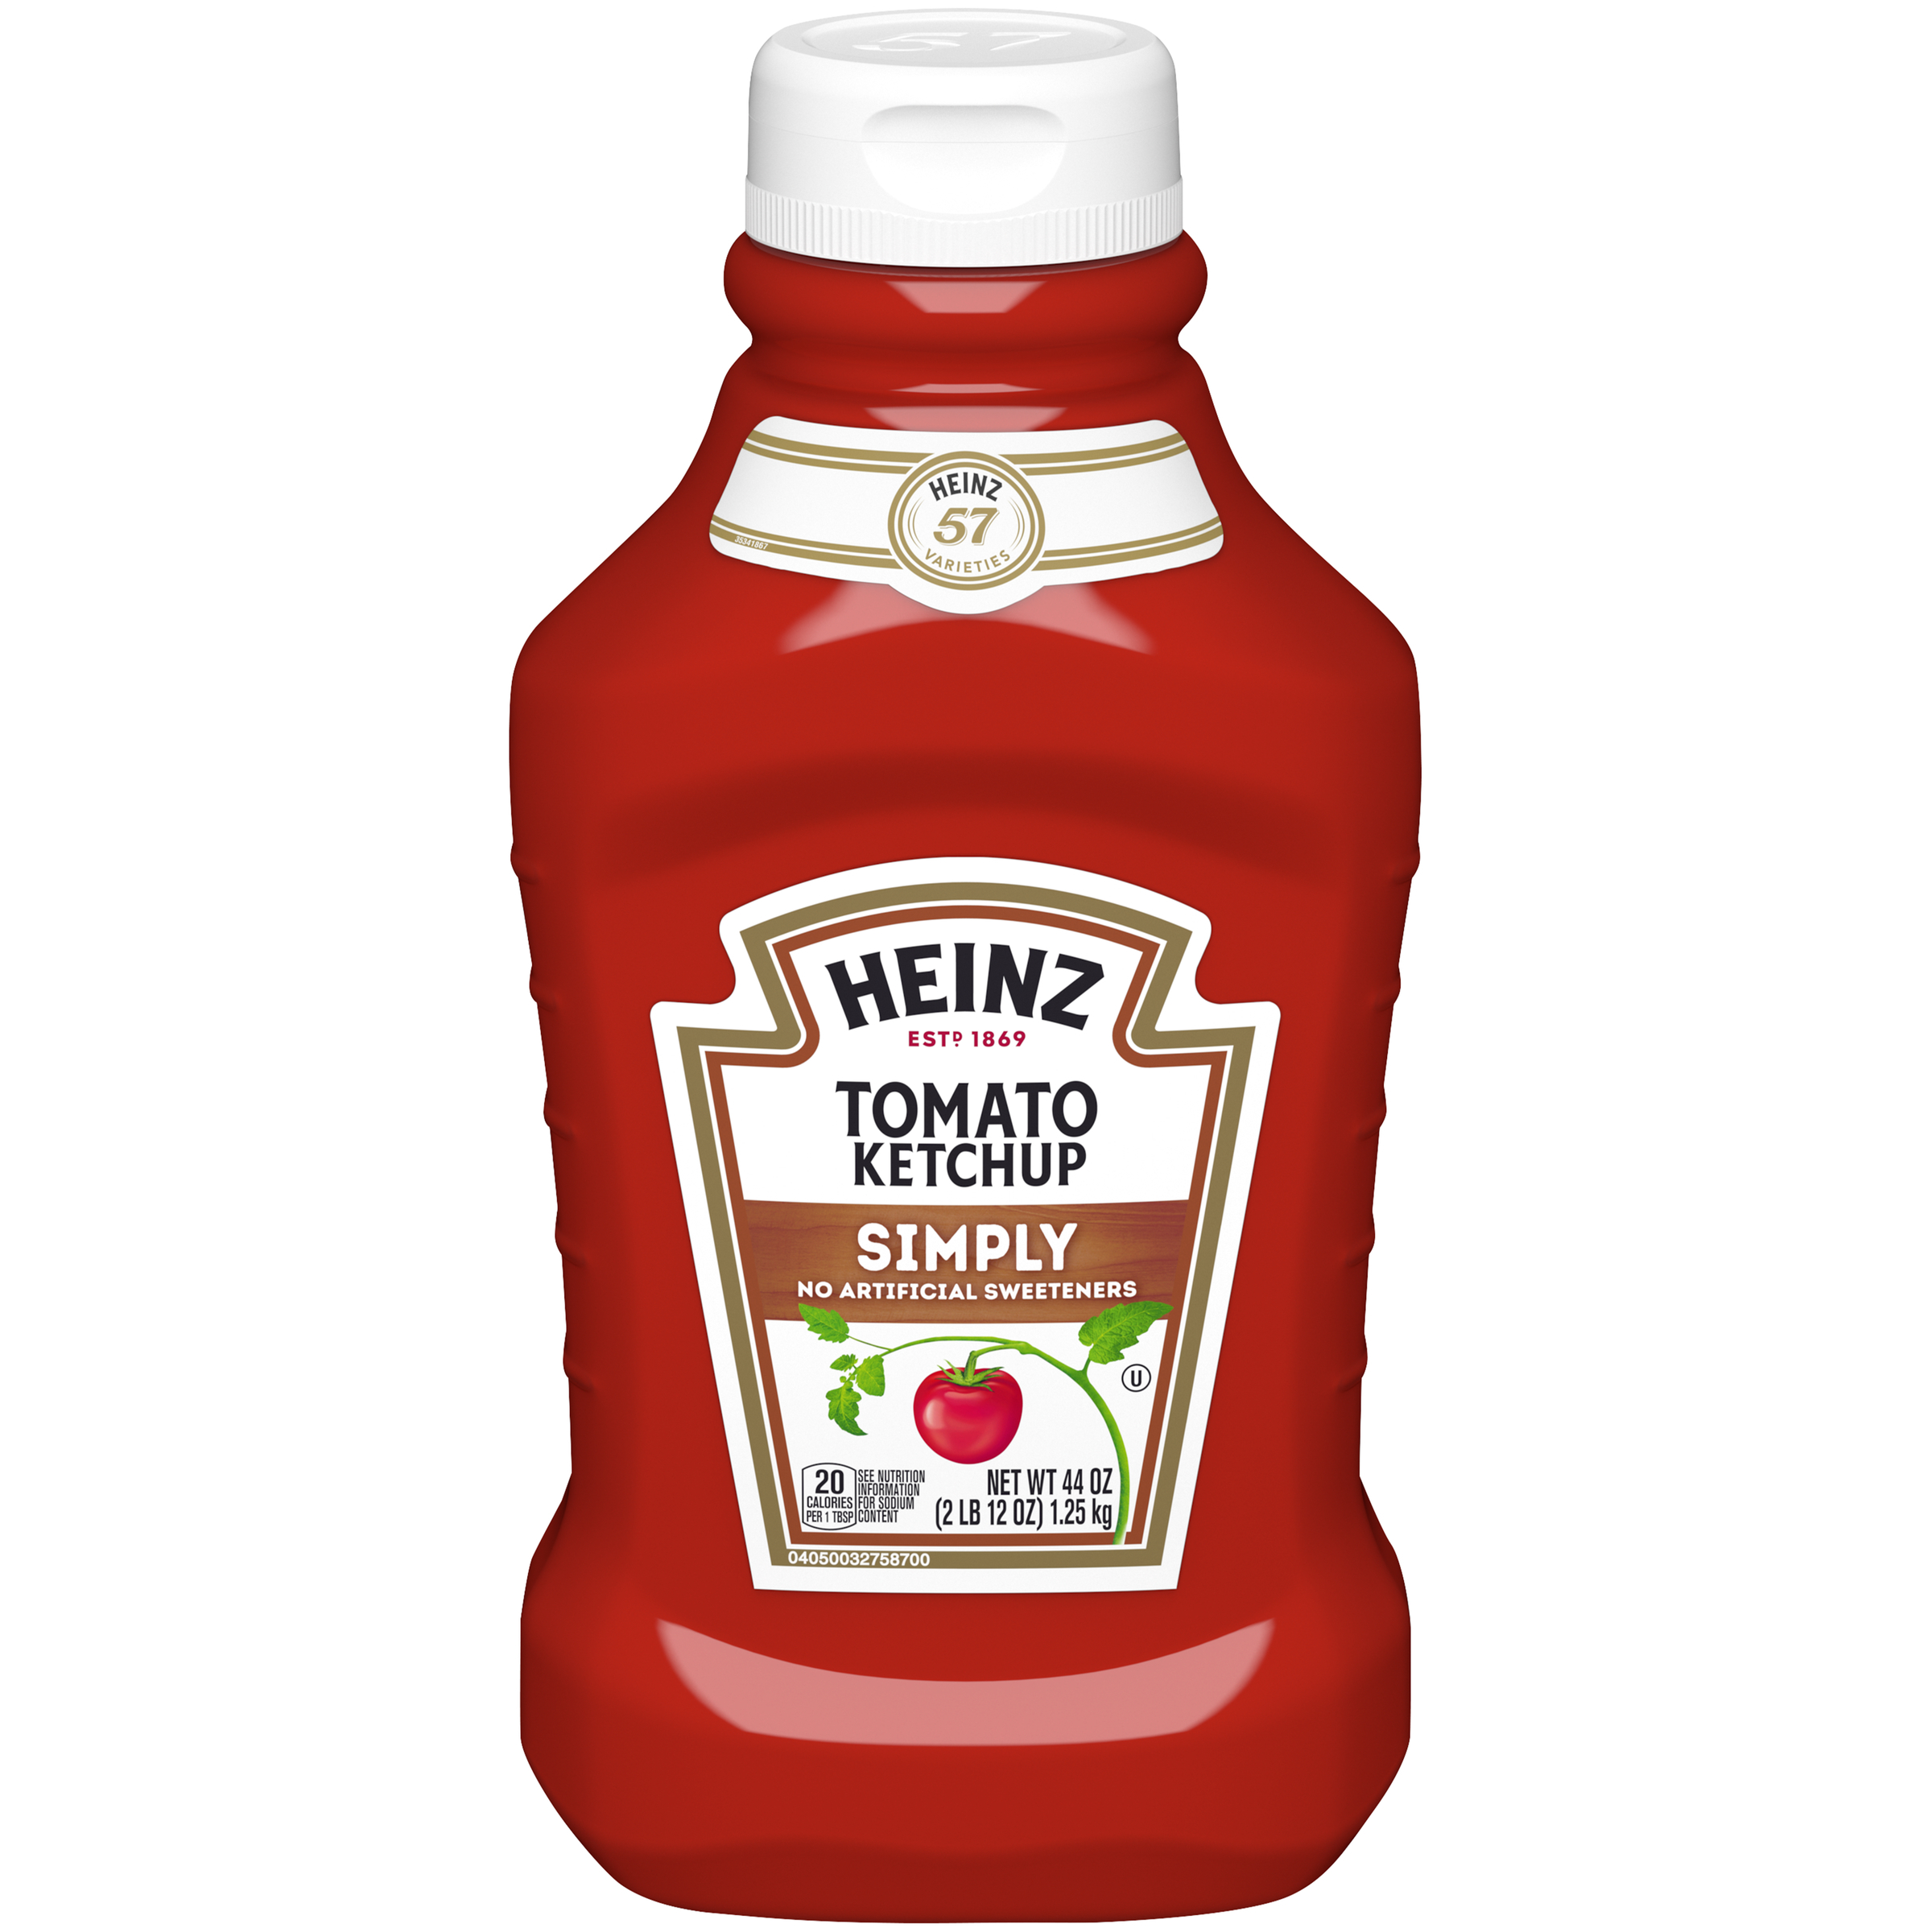 Heinz Simply Heinz Tomato Ketchup 44 oz Bottle image